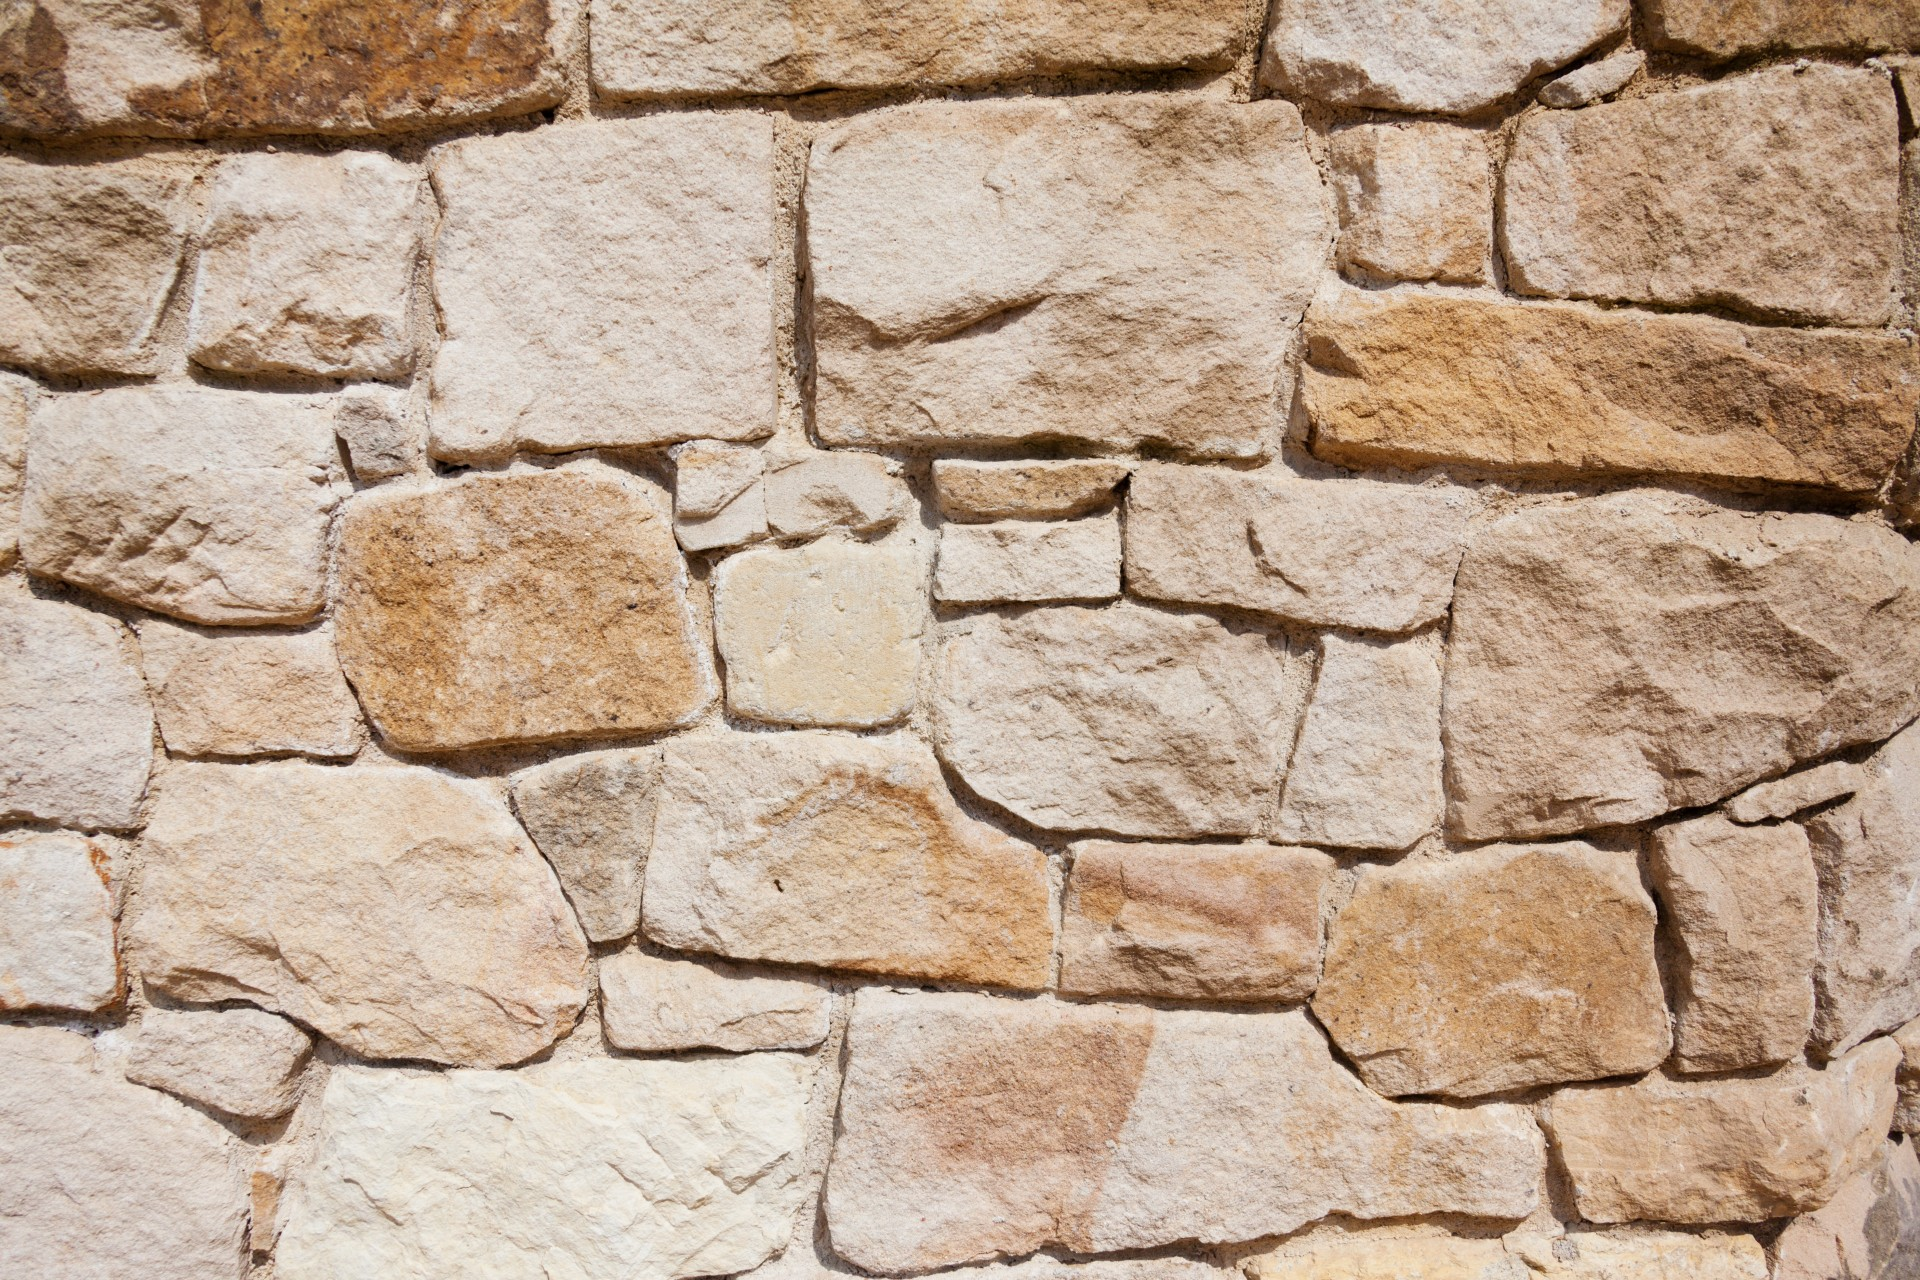 Stone Wall Background Free Stock Photo - Public Domain Pictures